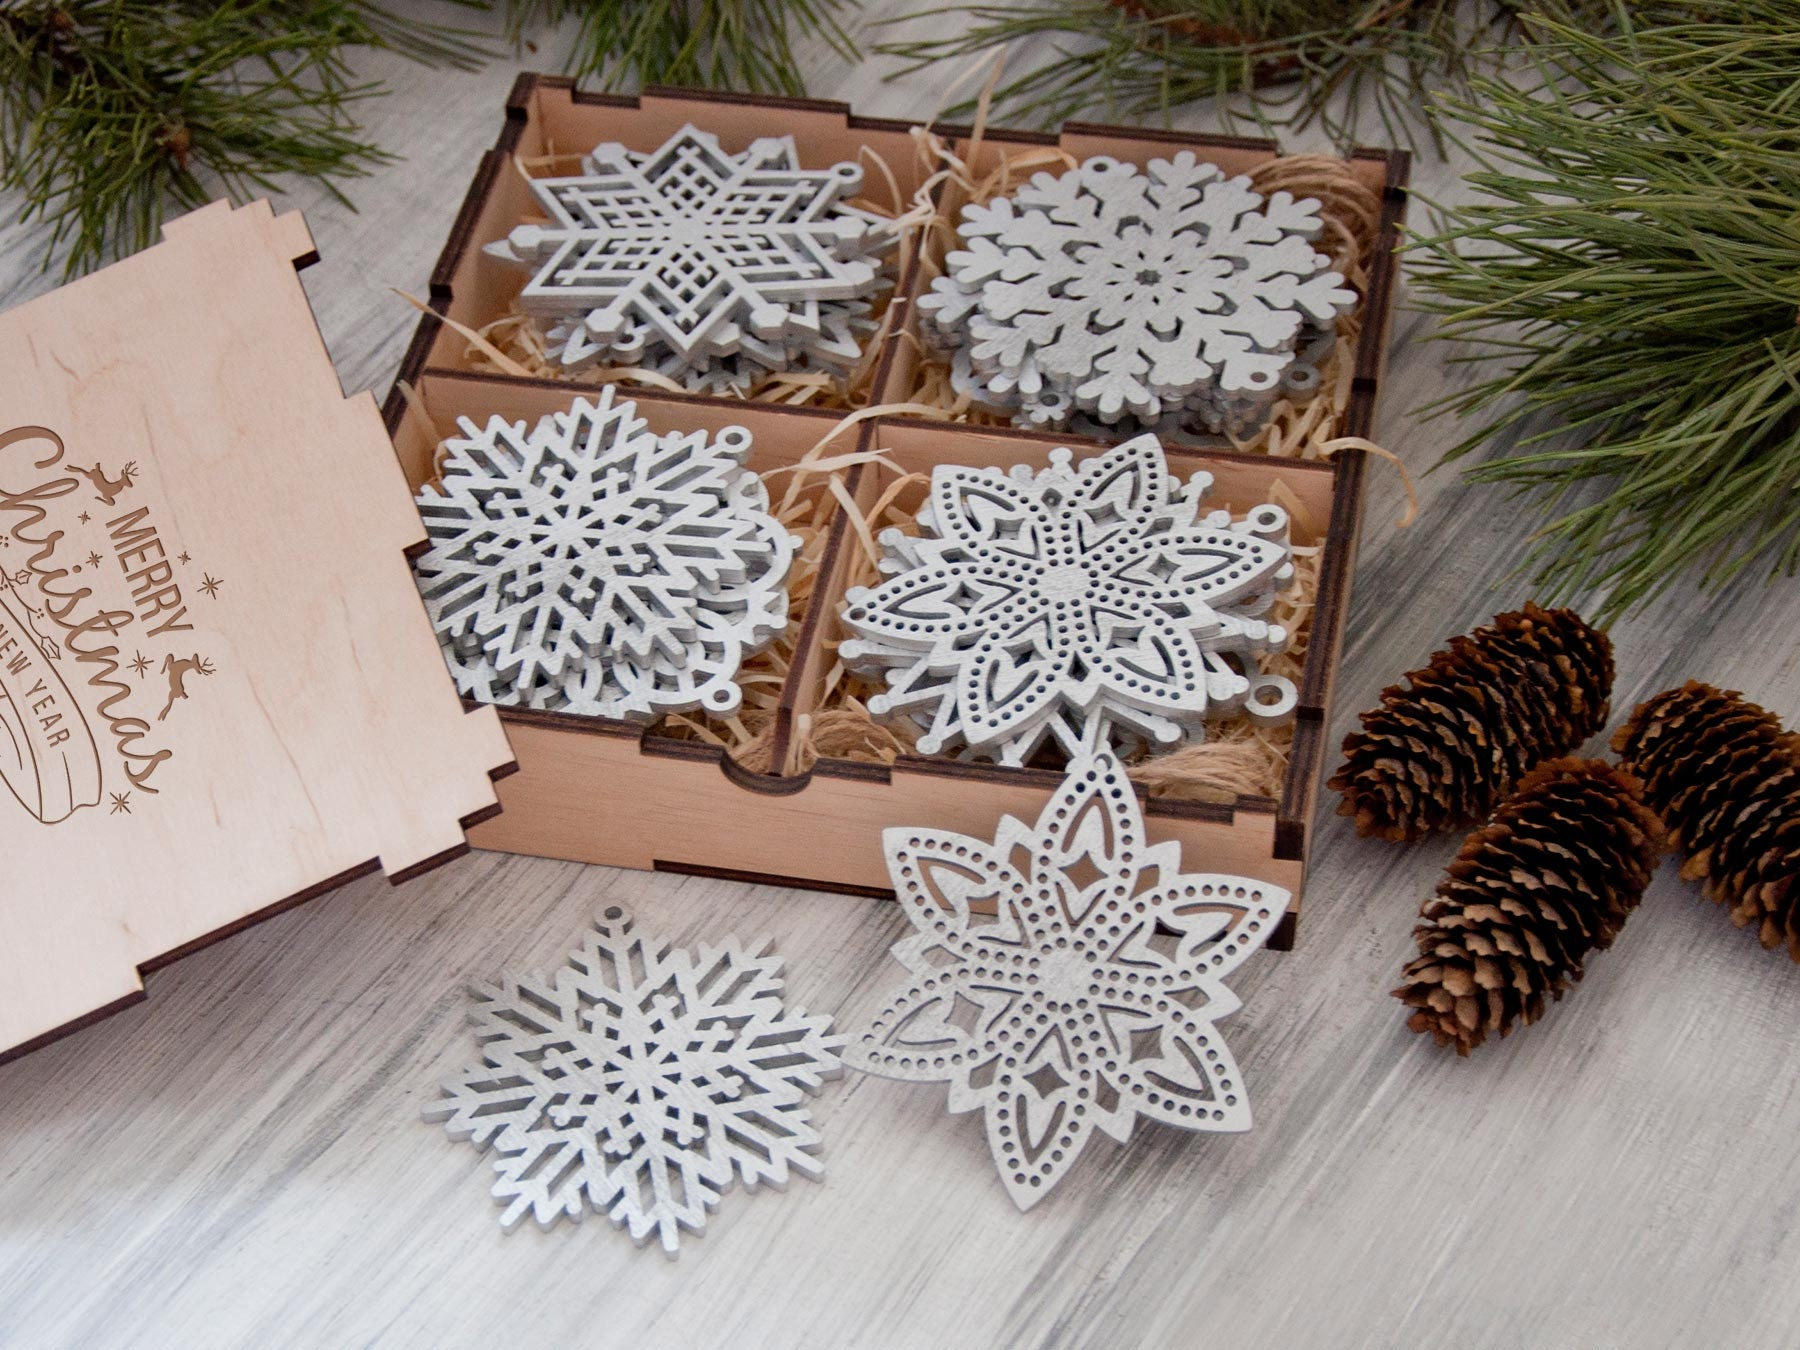 2 4 Days to USA Christmas Ornaments Wooden Snowflake Ornaments